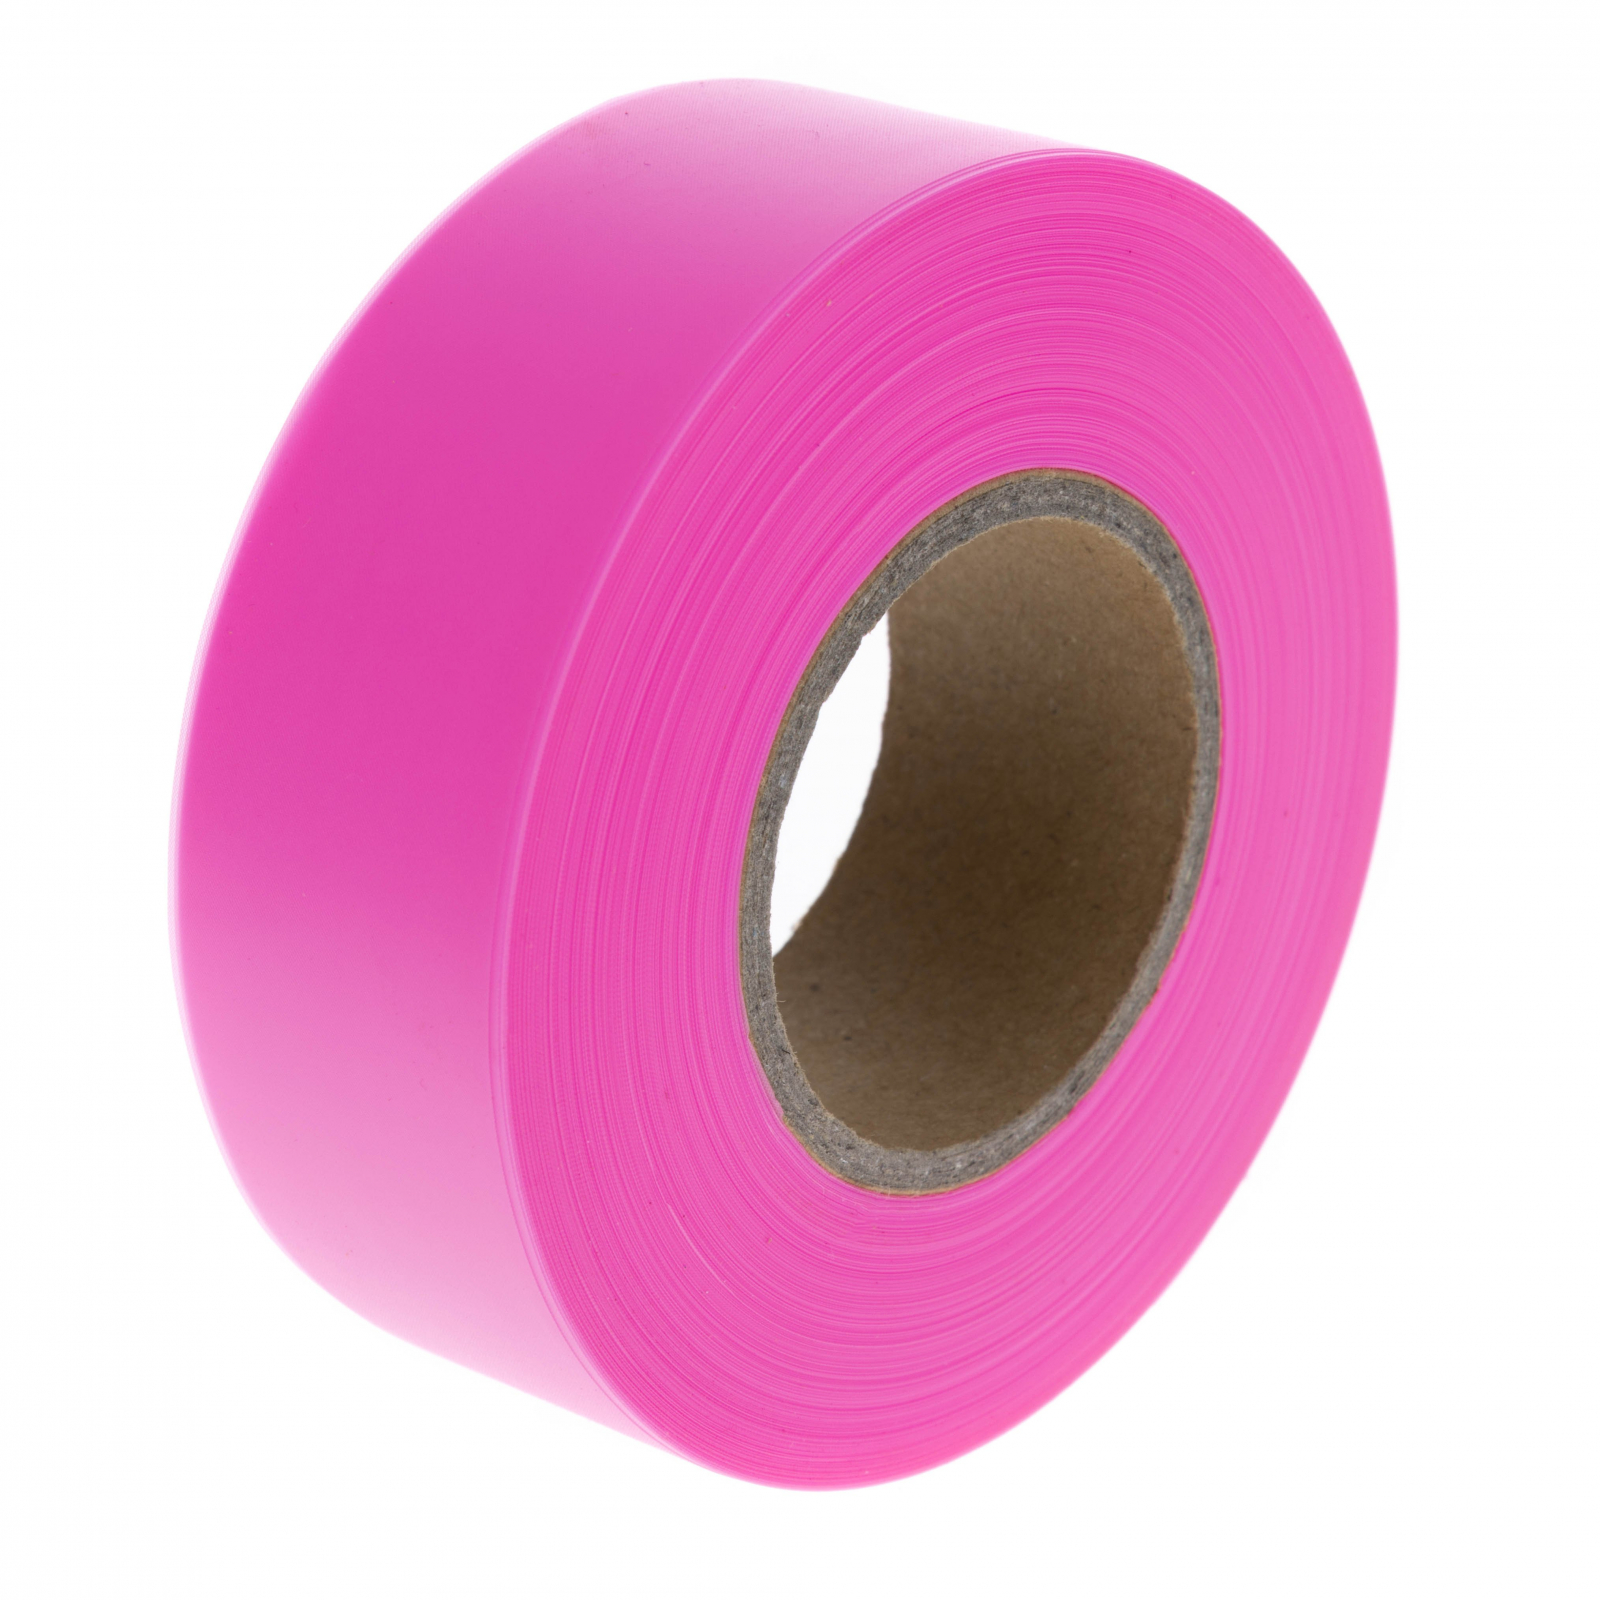 ASR Outdoor High Visibility Line Posting Hiking Trail Tape Hunting Boundary Marking Ribbon - Pink